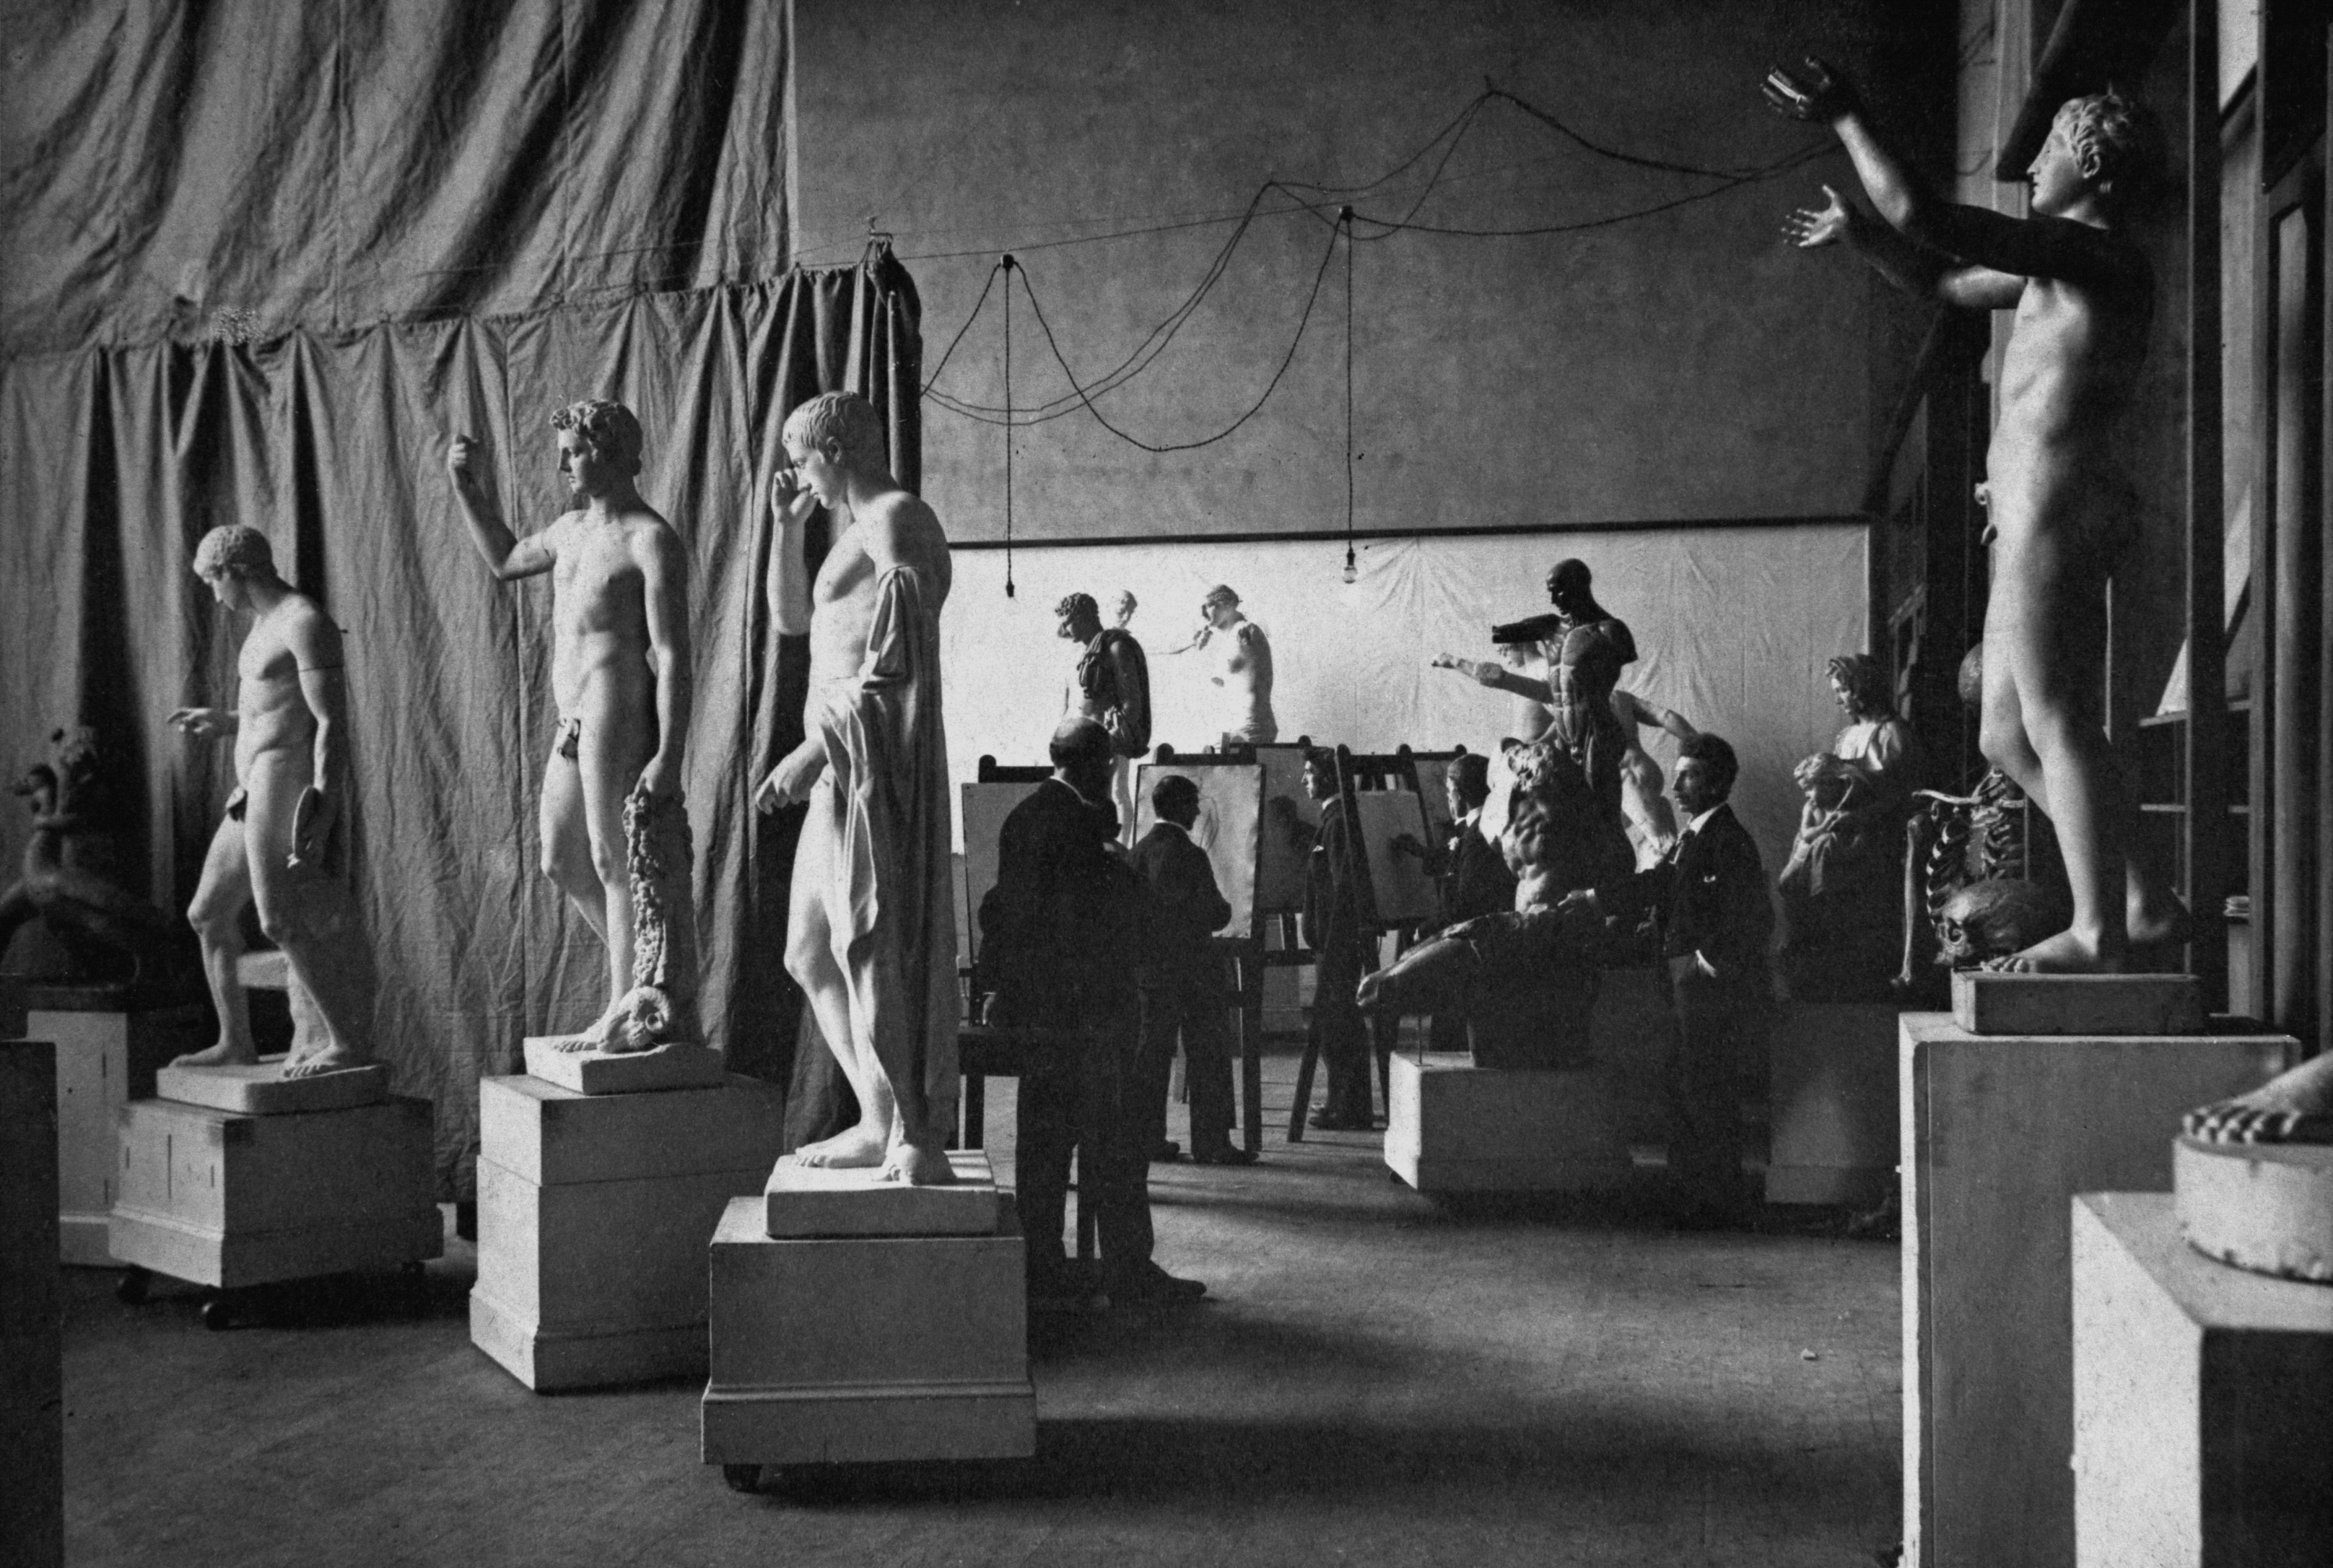 Antique class in Studio 40, 1900. Image courtesy of T. & R. ANNAN & SONS Ltd.